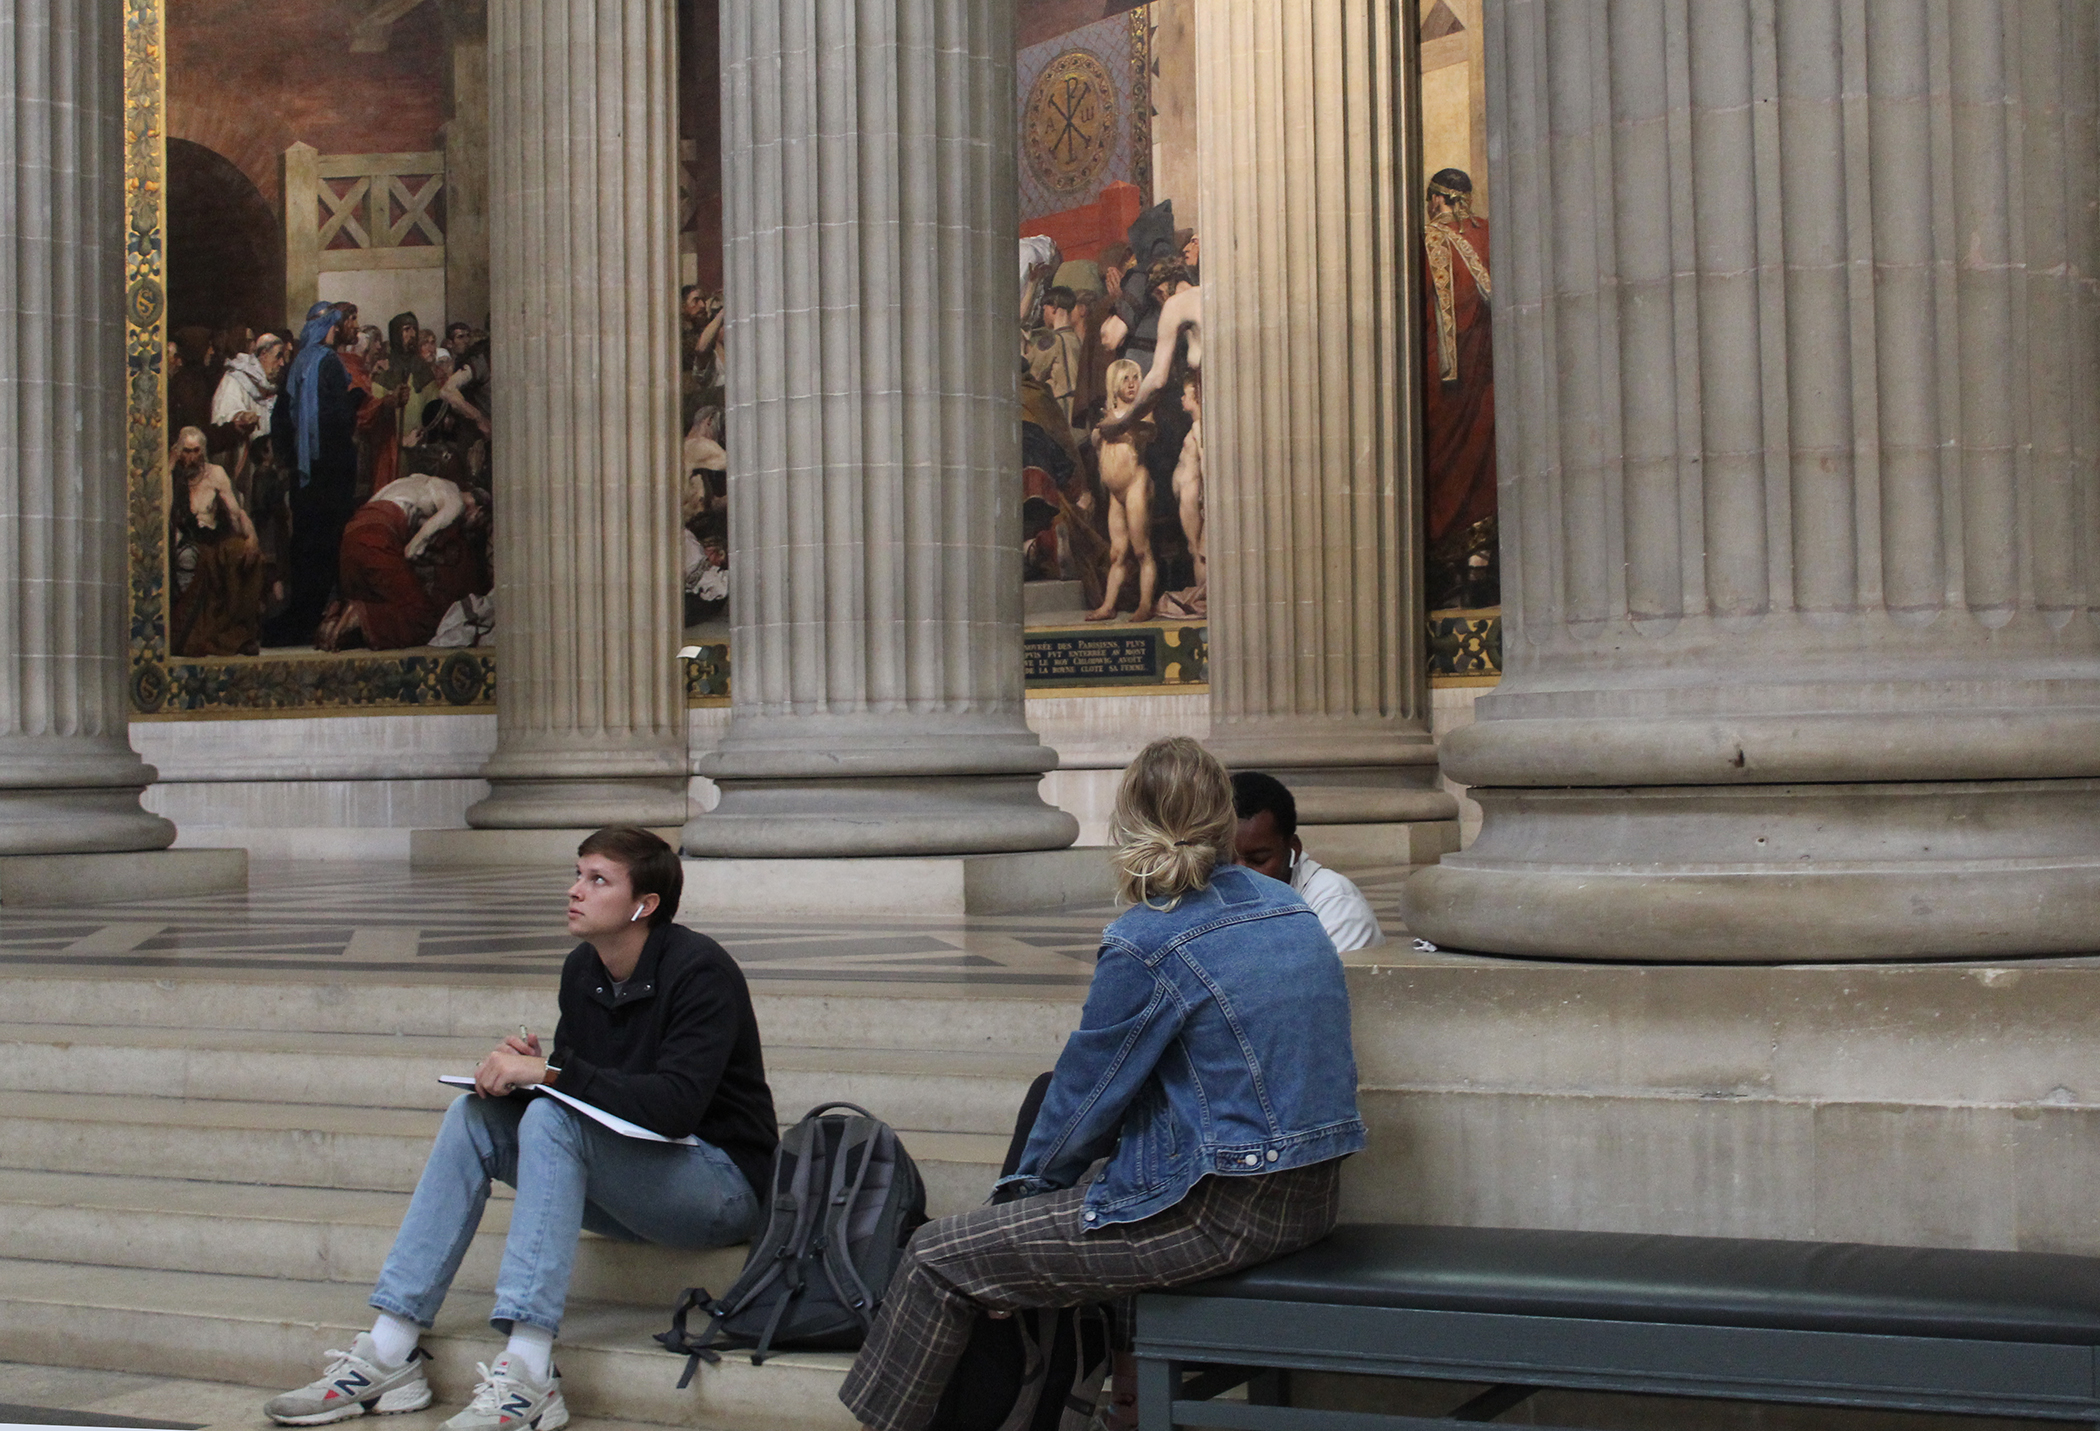 Three students sitting down in the Panthéon. One student is looking up.